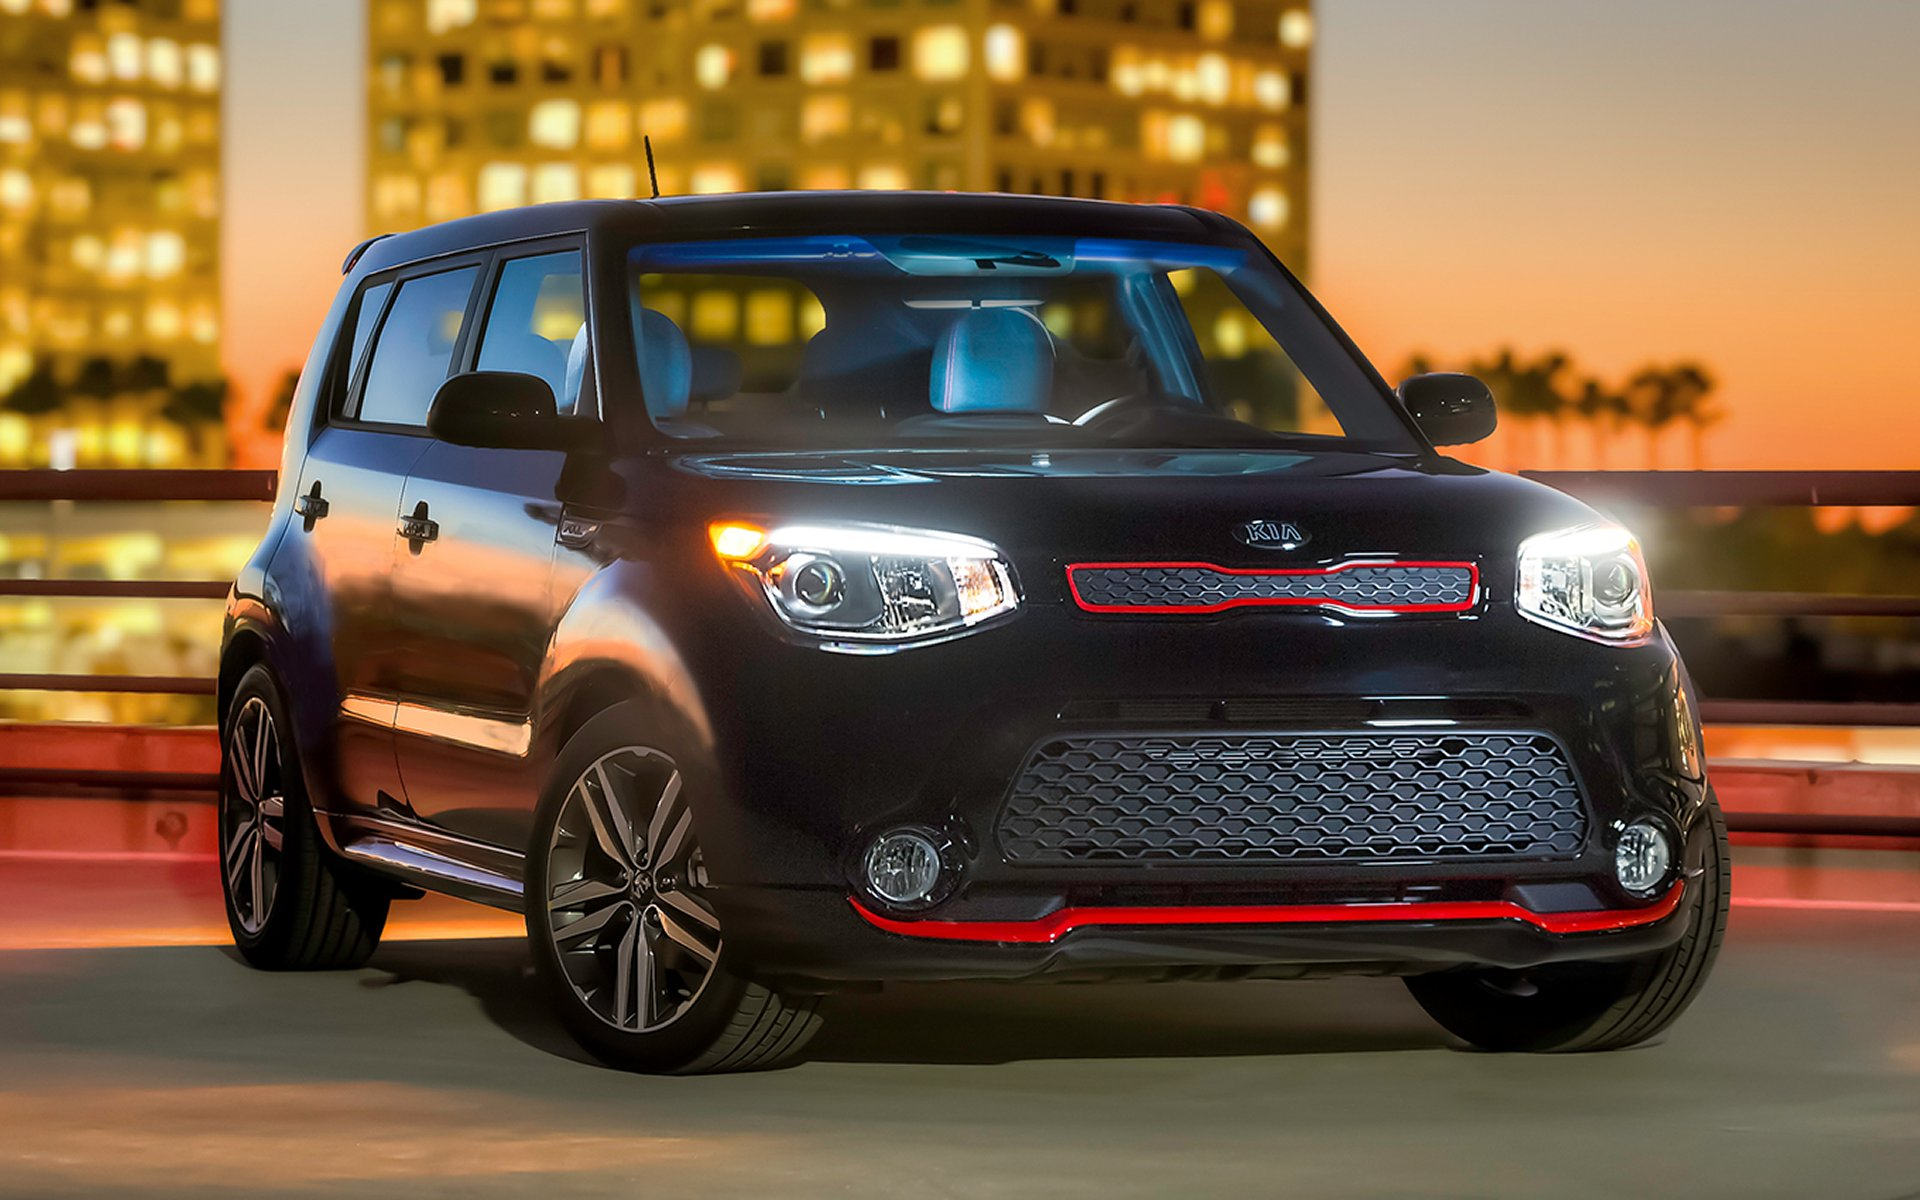 Kia Launched 2015 Soul Red Zone 2.0 Special Edition - Korean - 2022 Kia Forte Turbo Release Date, Color Options